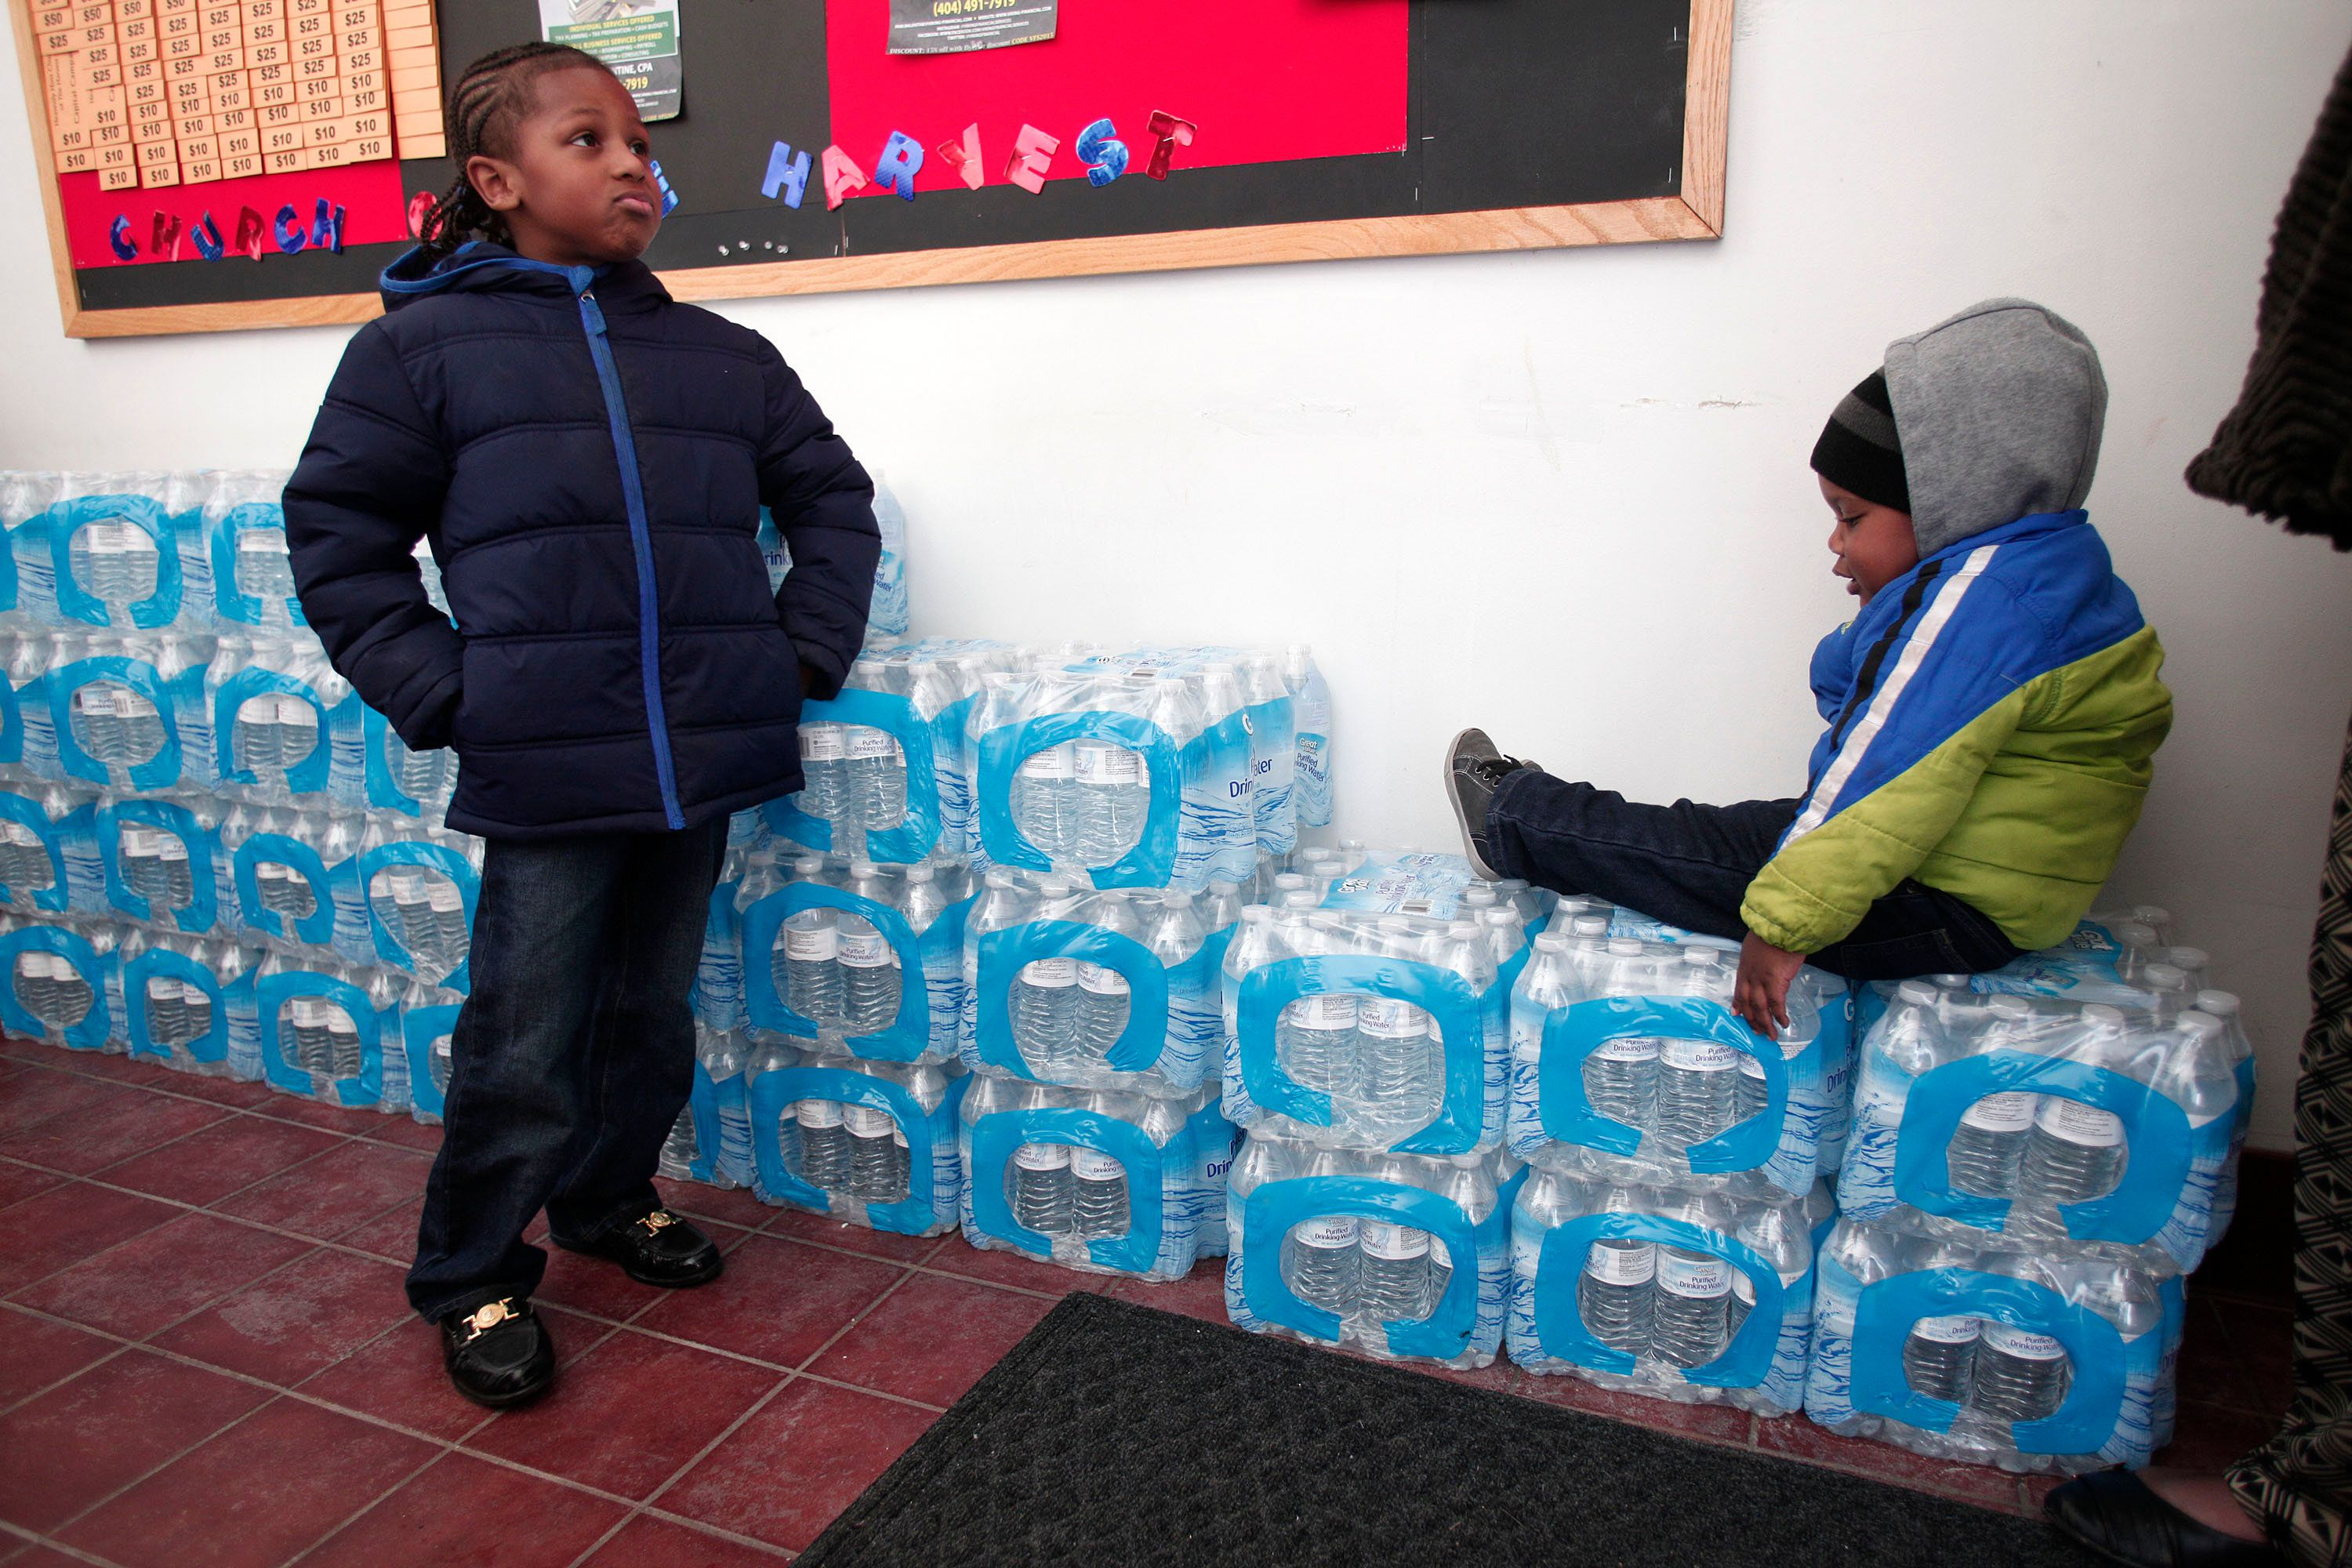 Justin Roberson (L), age 6, of Flint, Michigan and Mychal Adams, age 1, of Flint wait on a stack of bottled water at a rally where the Rev. Jesse Jackson was speaking about about the Flint's water crises.